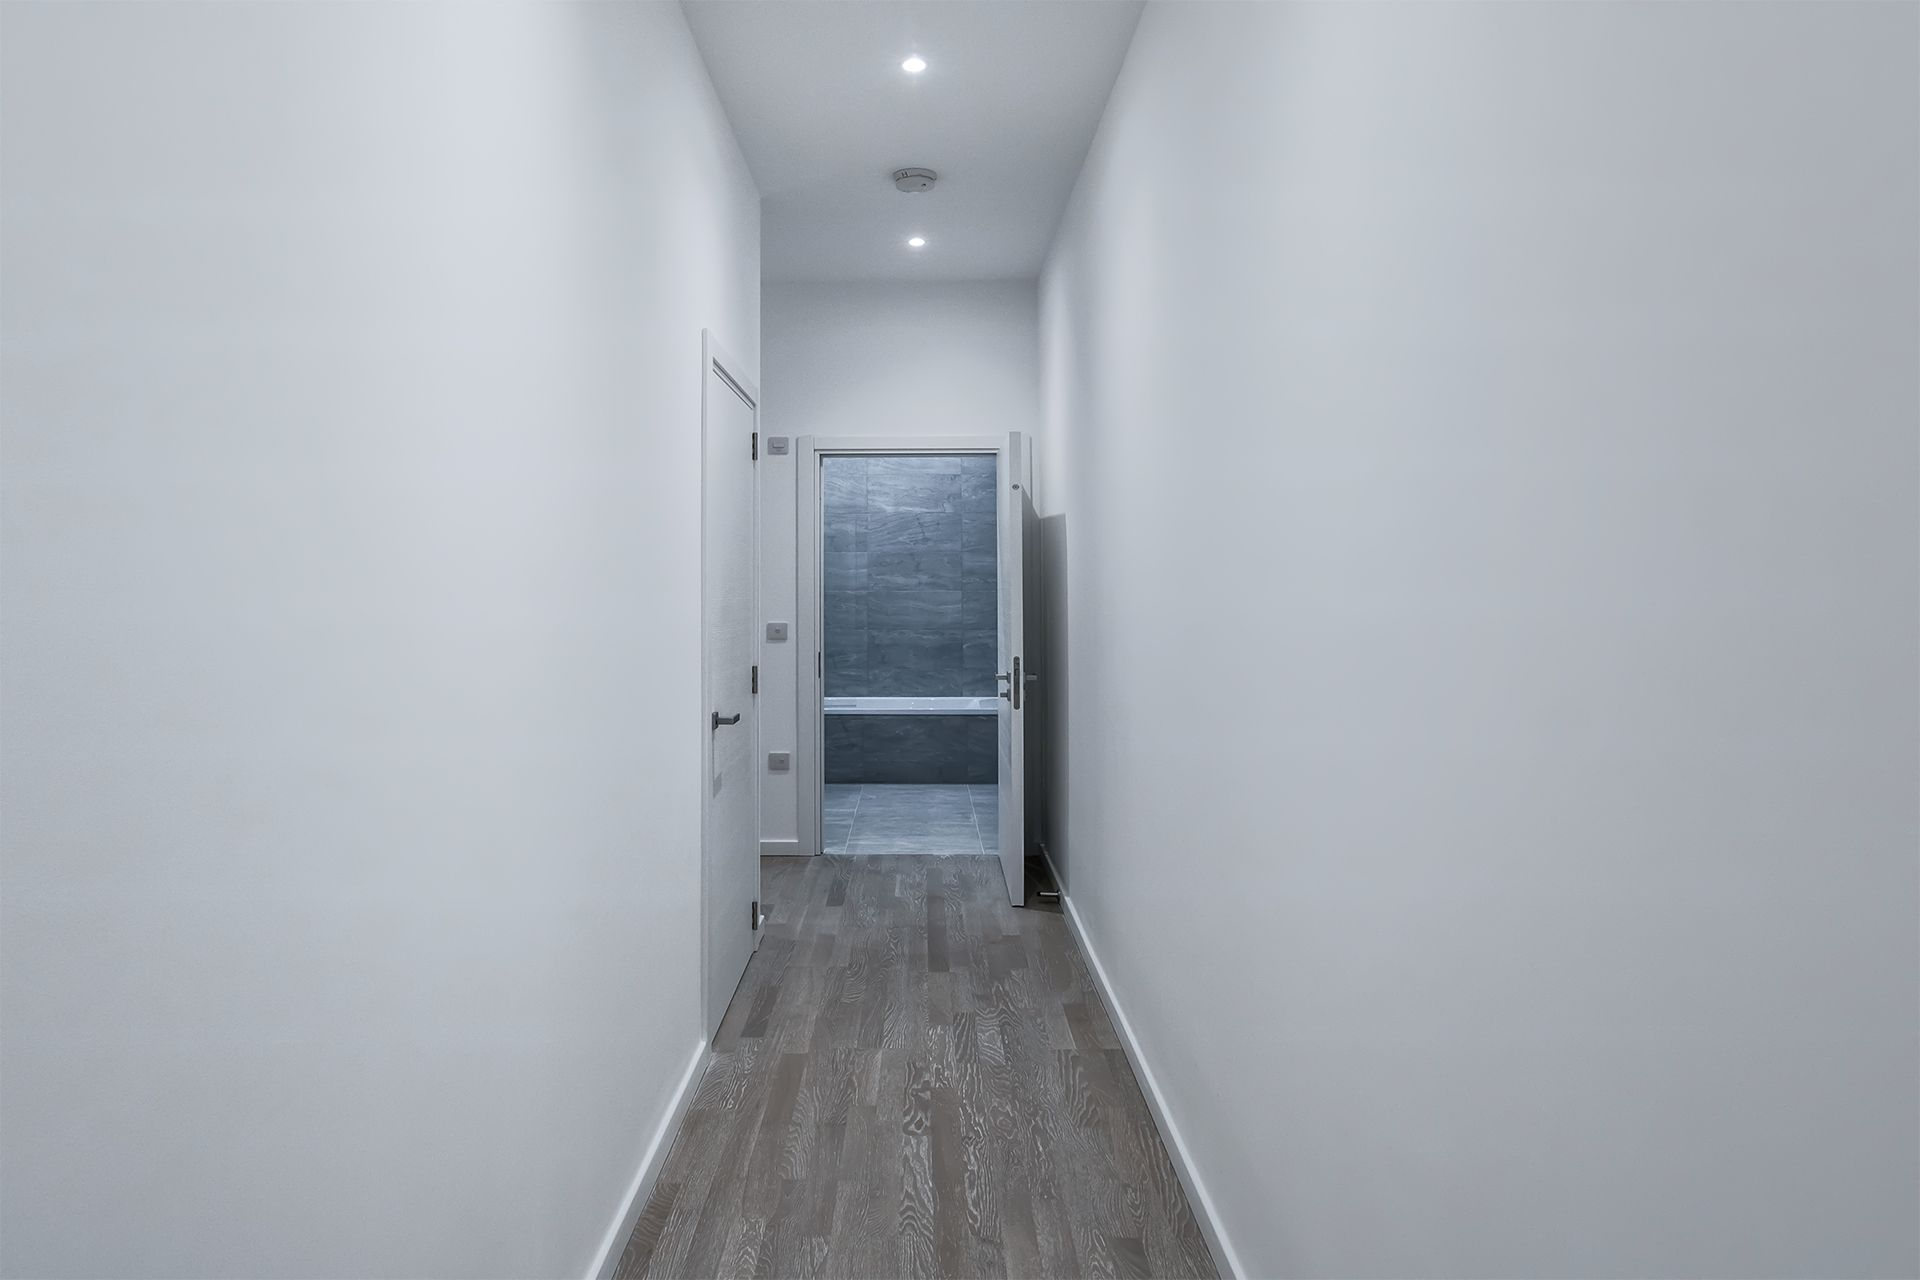 1 Bedroom apartment to rent in London VIL-SA-0027